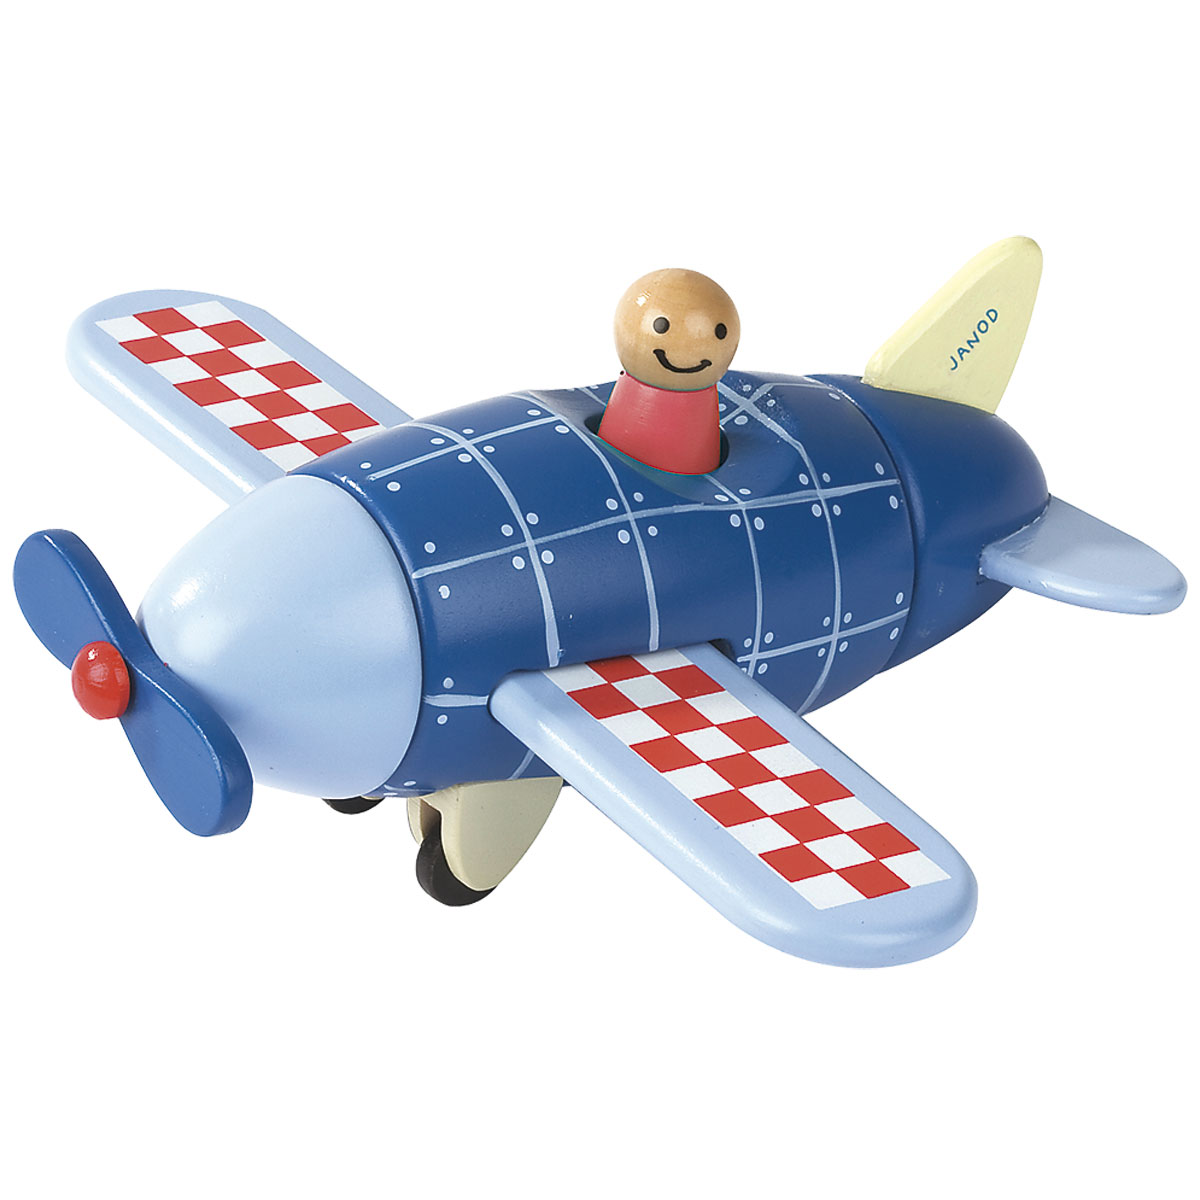 Magnetic Aeroplane Wooden Toys For Children Magnetic